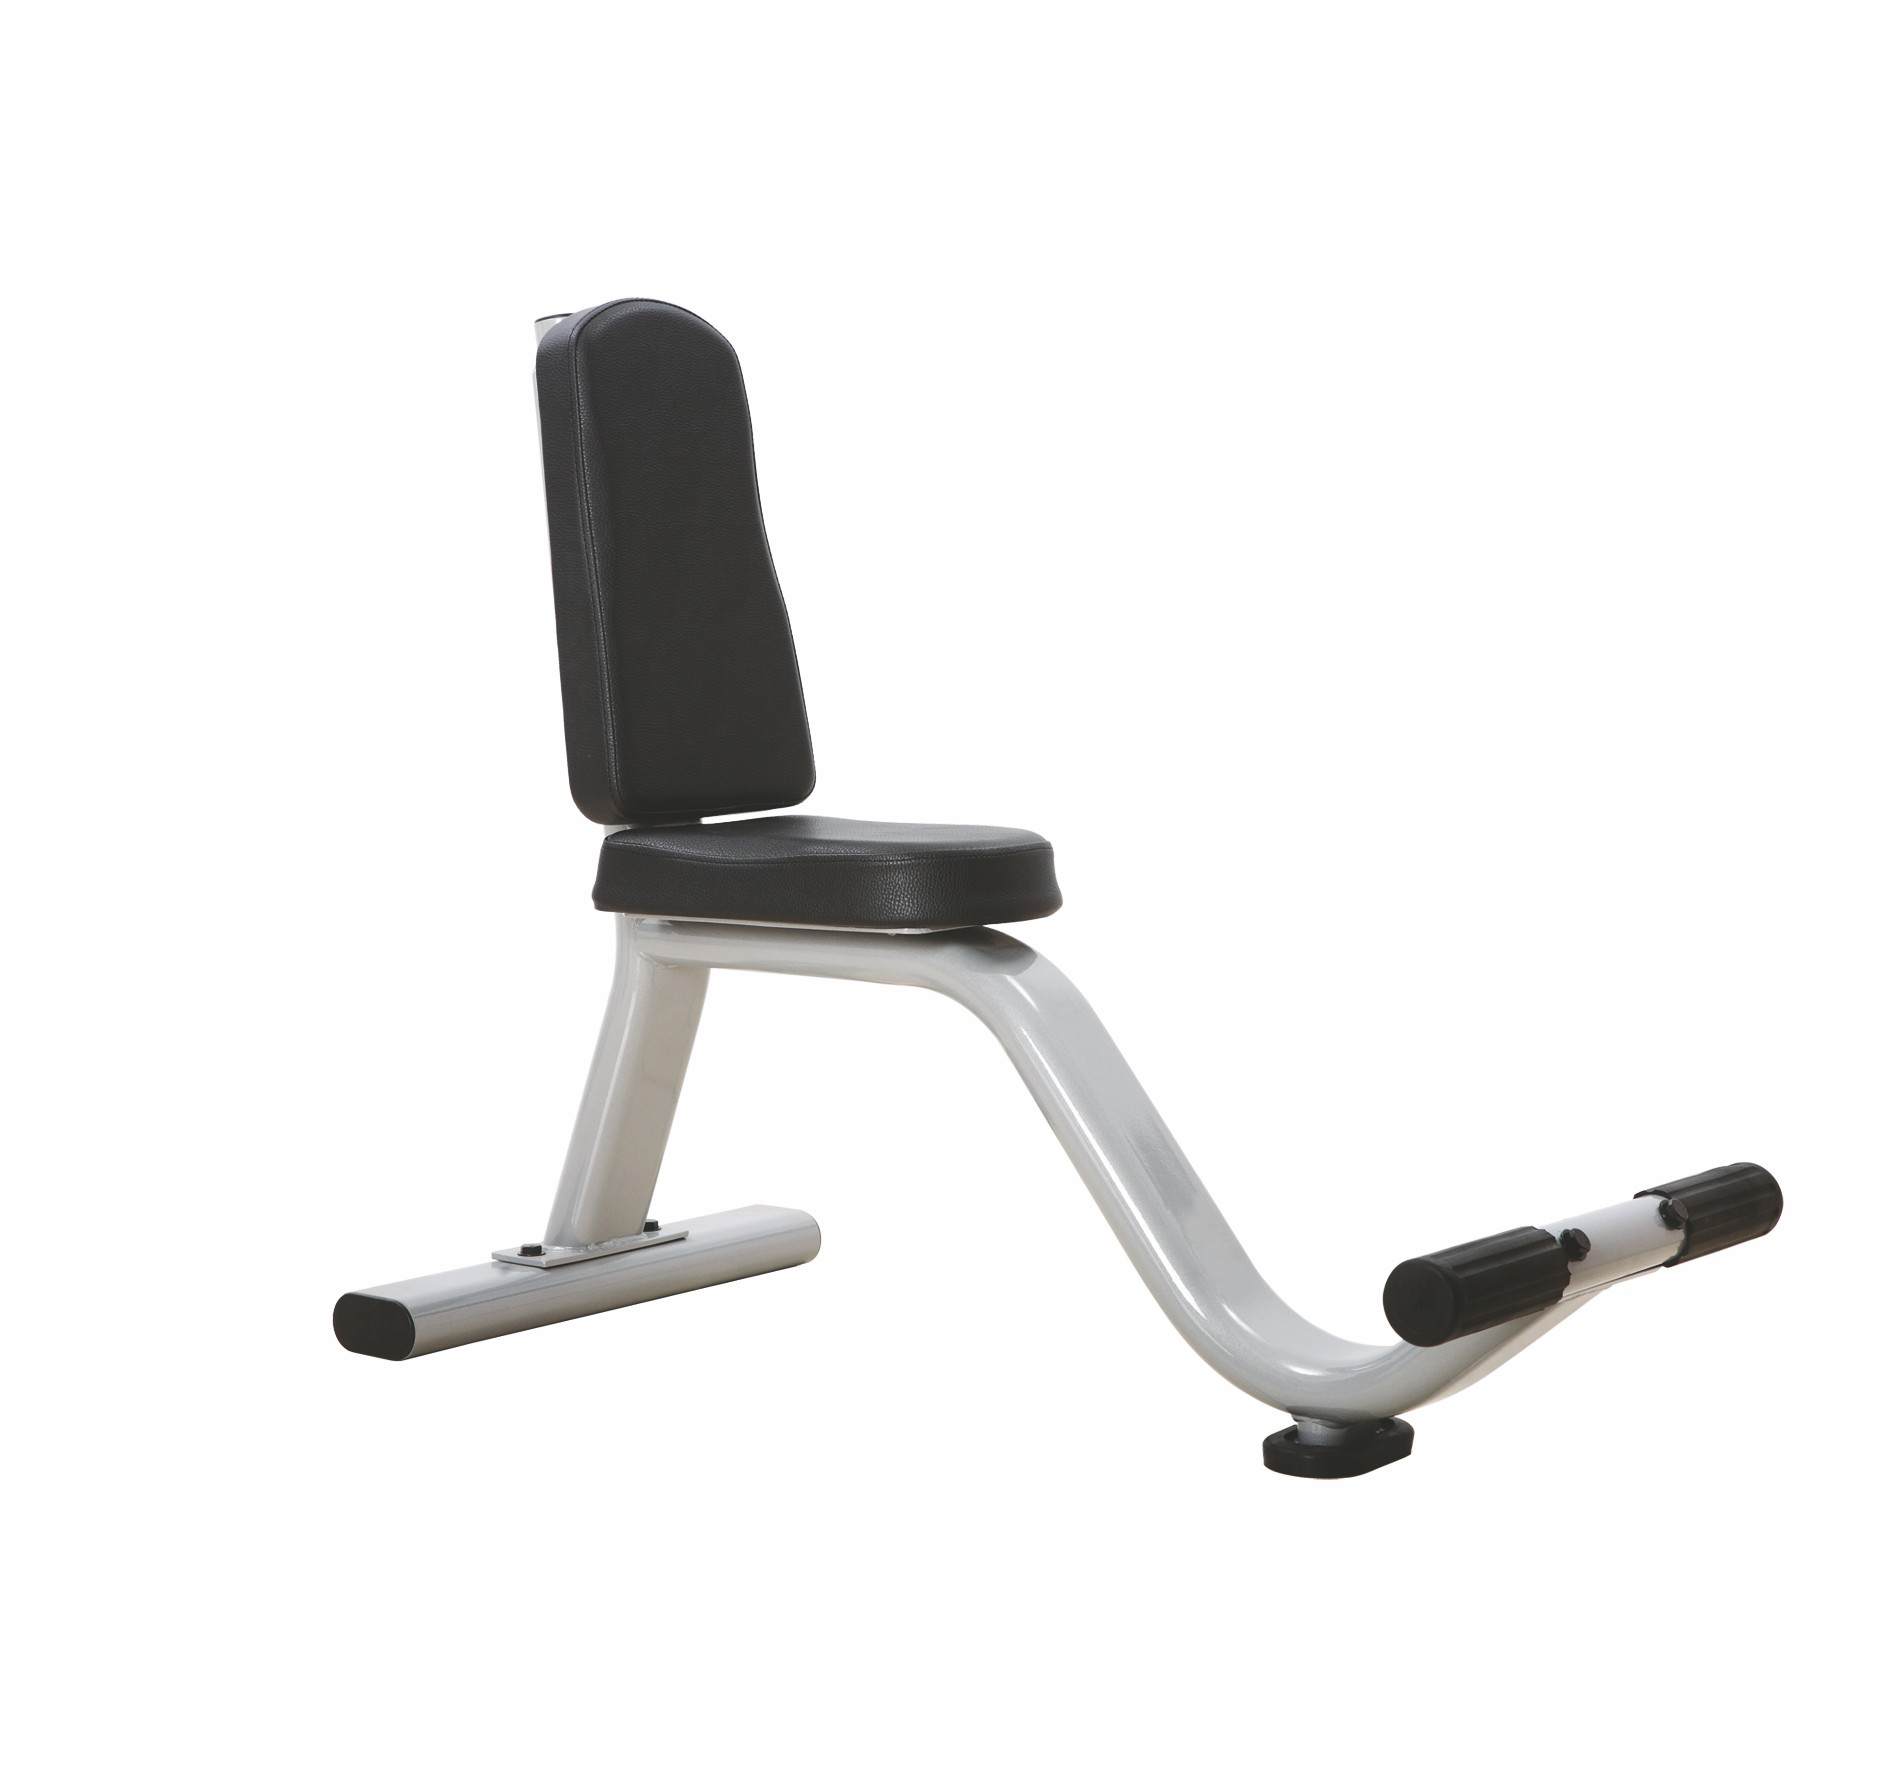 J-038-Utility-Bench-Body-Strong-Commercial-Use